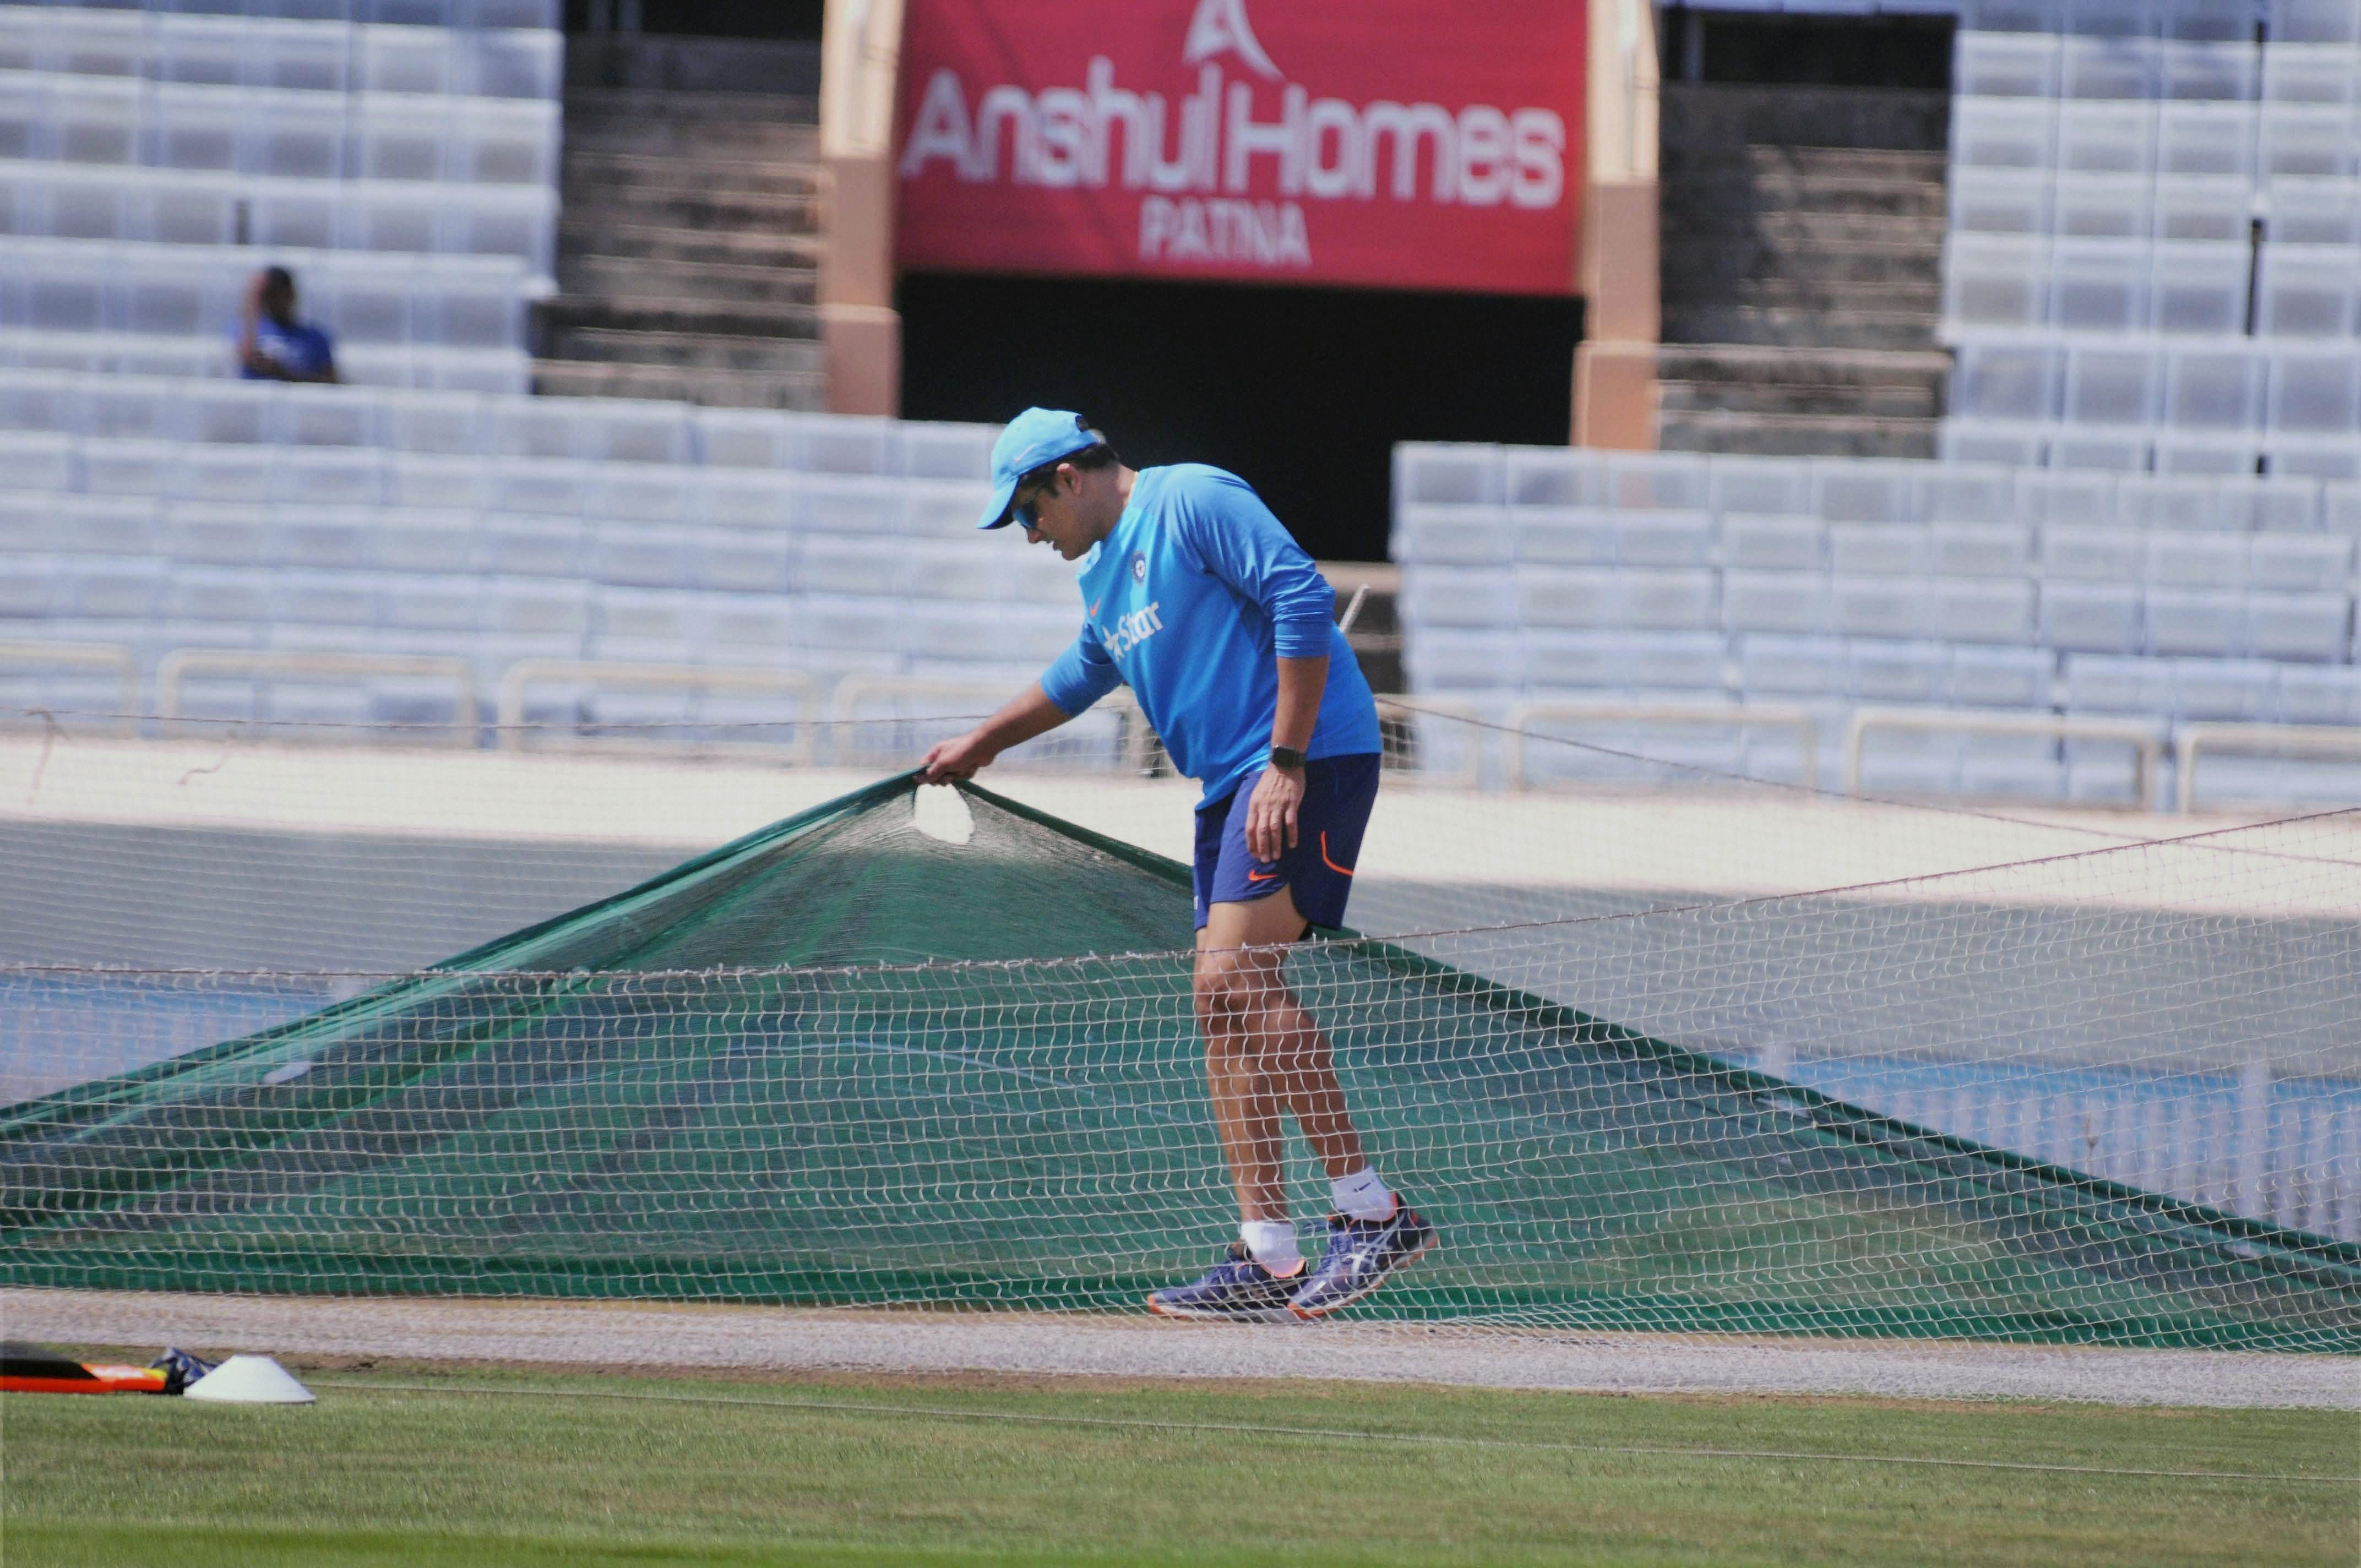 India coach Anil Kumble inspects the pitch in Ranchi ahead of the third Test against Australia (PTI)